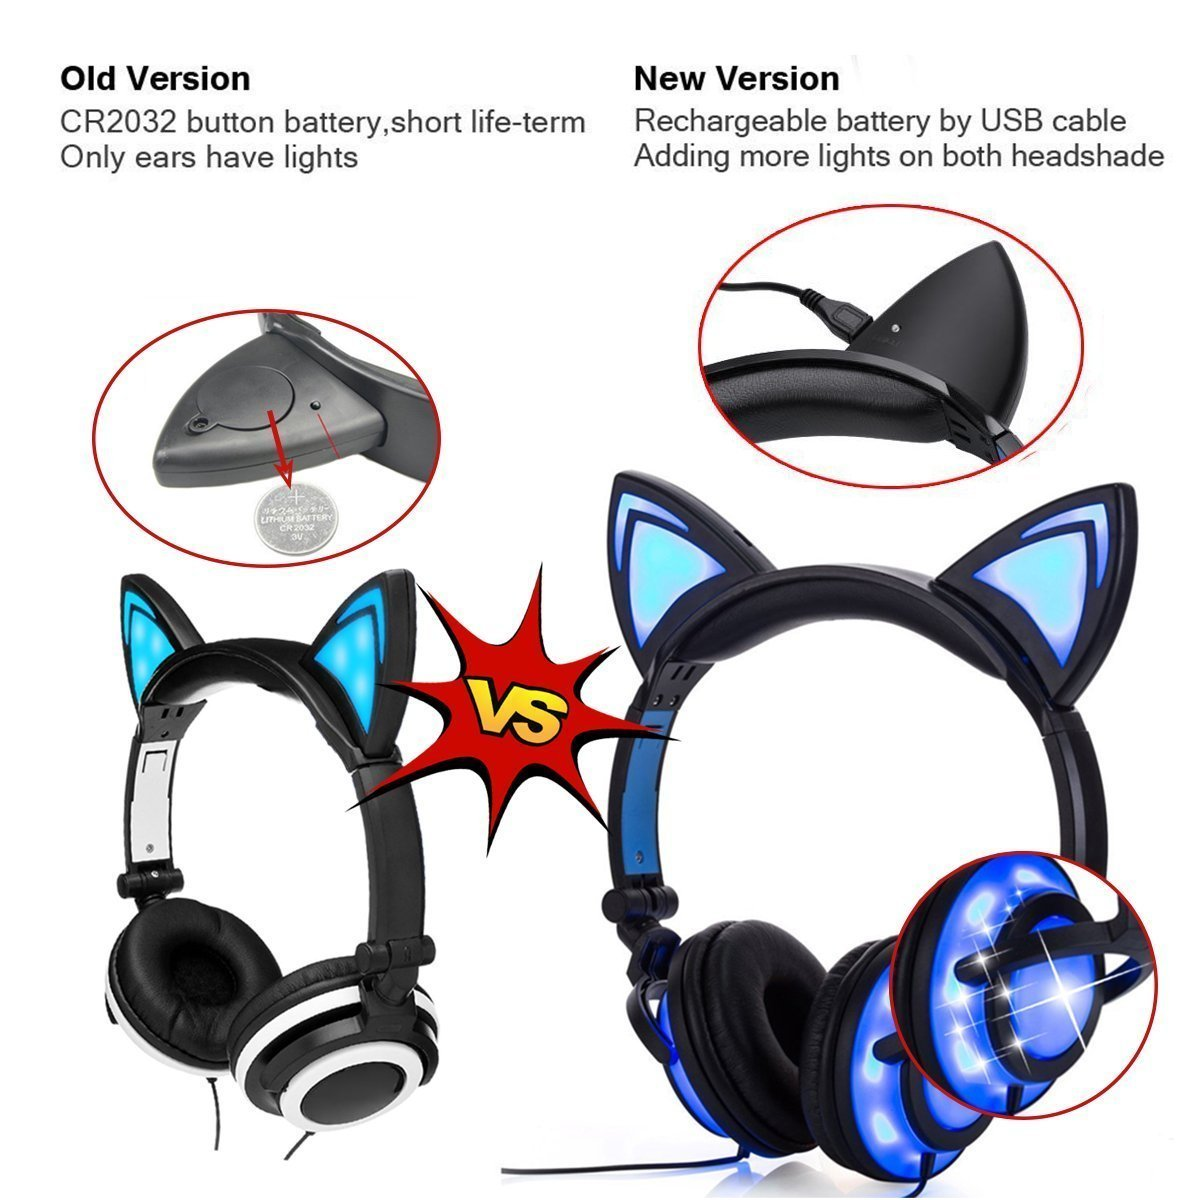 Amazon.com: Kids Headphones with LED Light USB Rechargable 85dB Volume Limited Adjustable Headband 3.5mm Jack Over/On Ear Foldable Game Headset for Girls ...